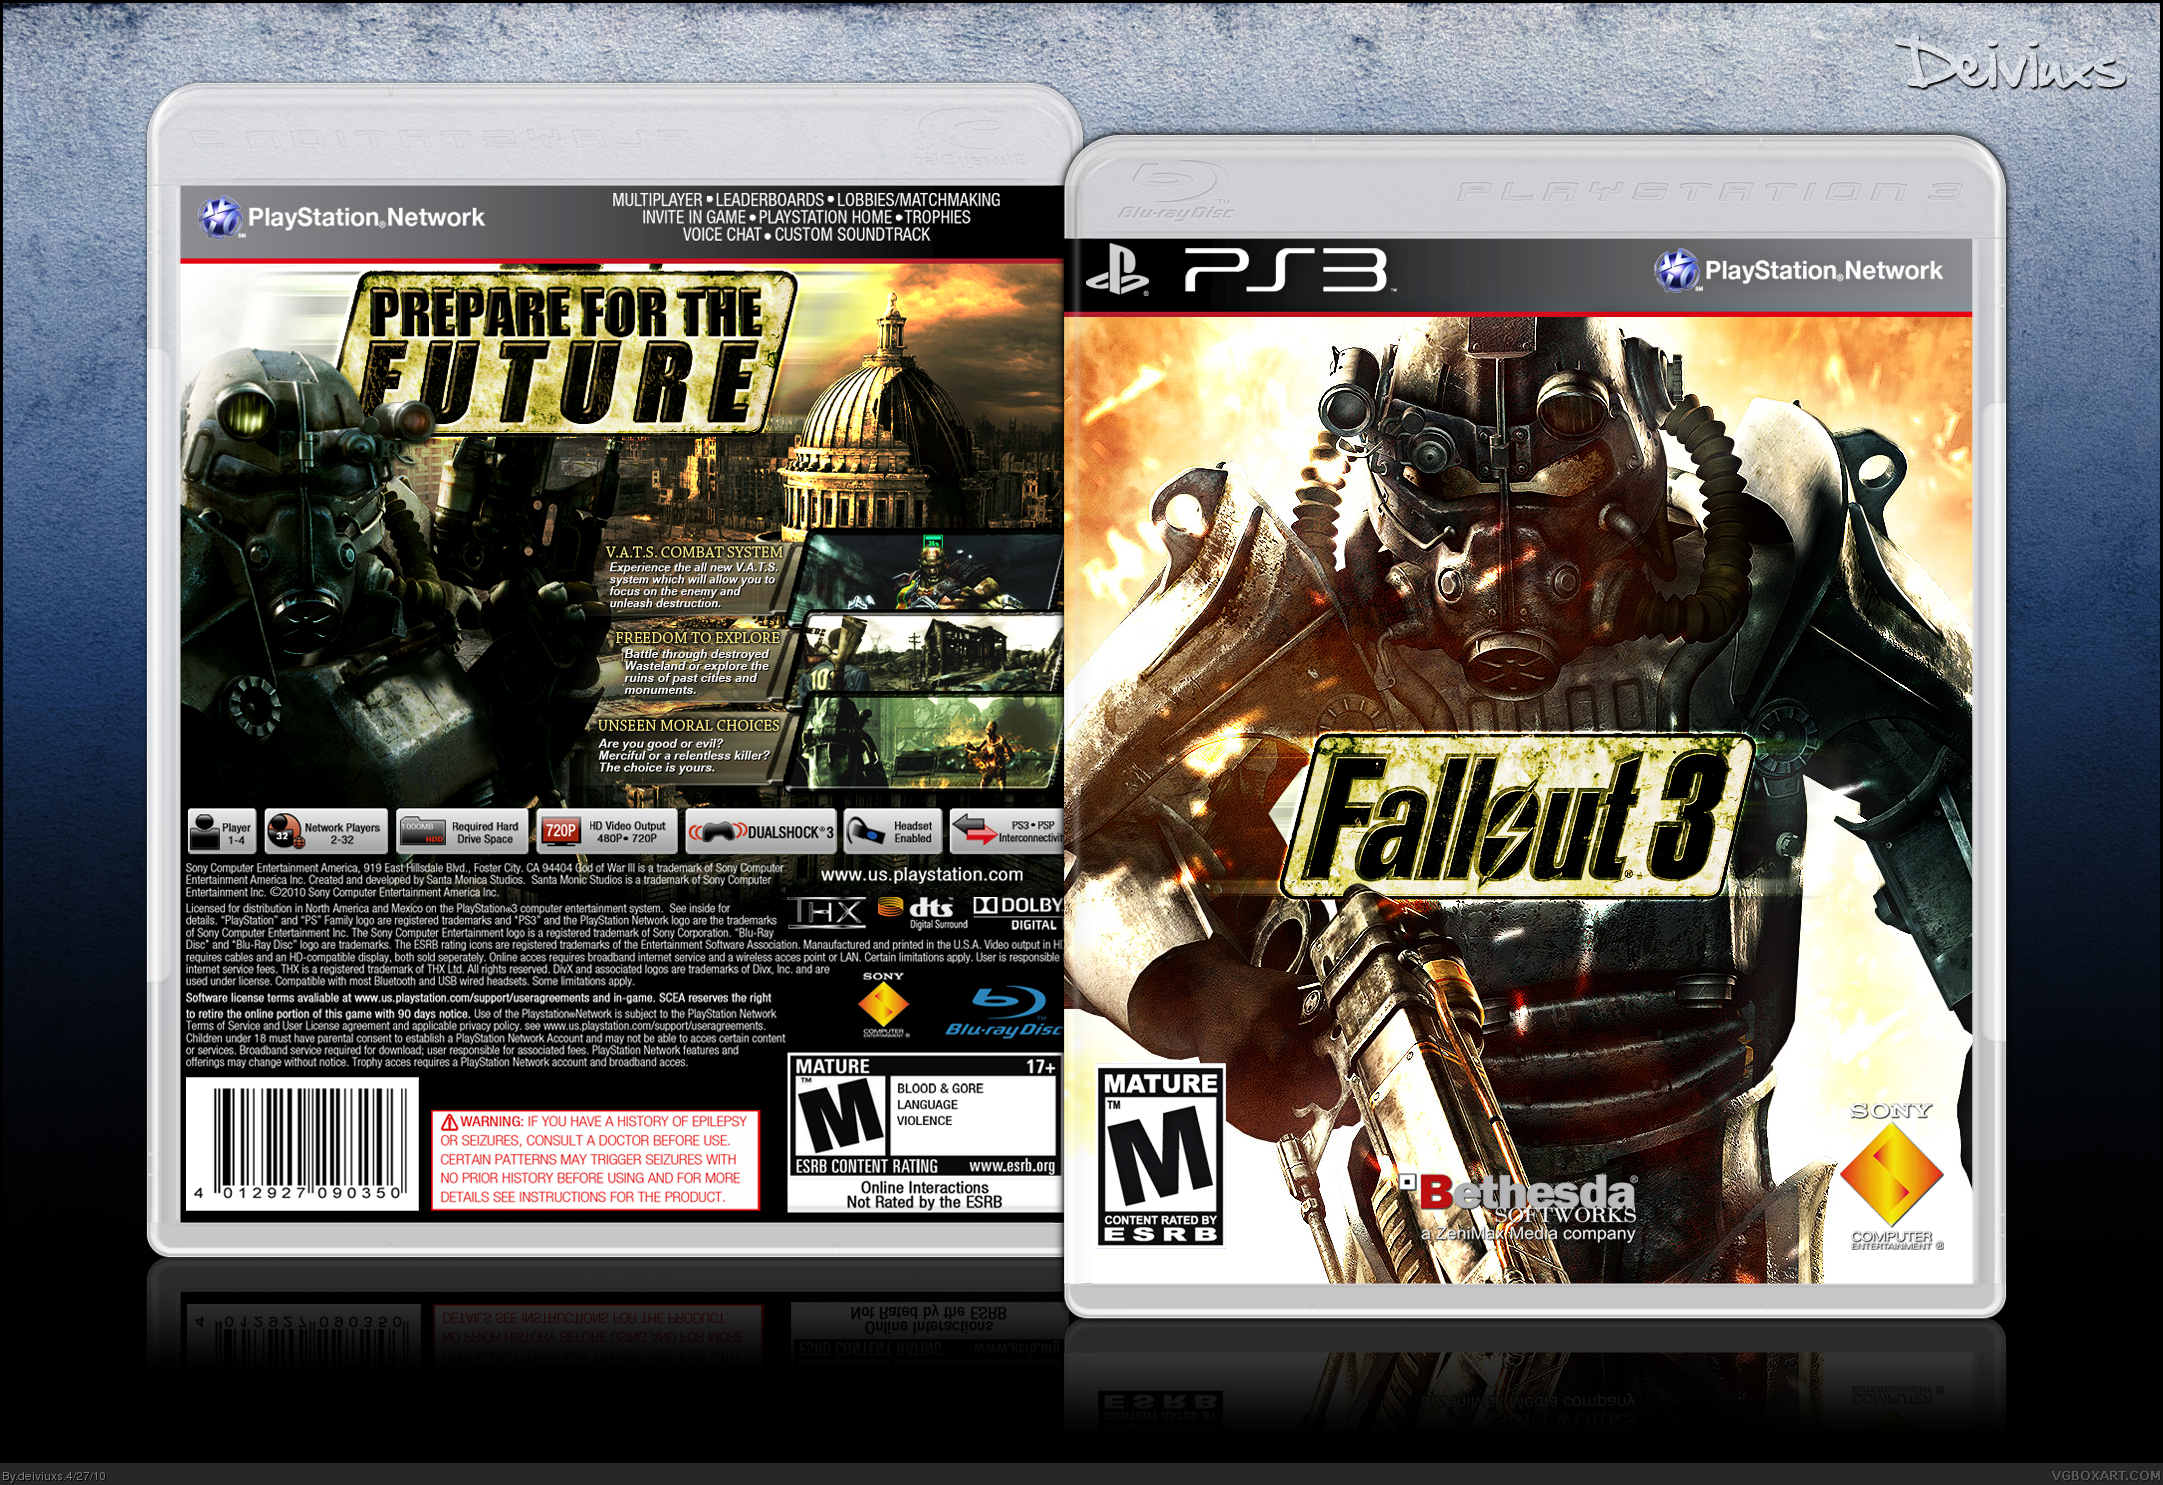 Fallout 3 not updating